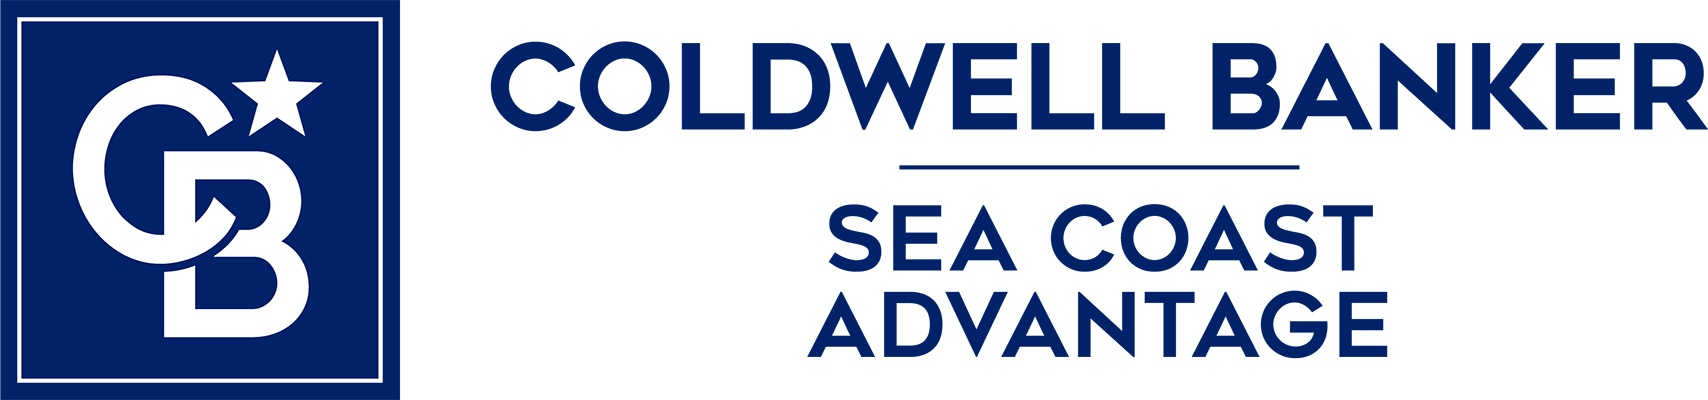 David Unsicker - Coldwell Banker Sea Coast Advantage Realty Logo